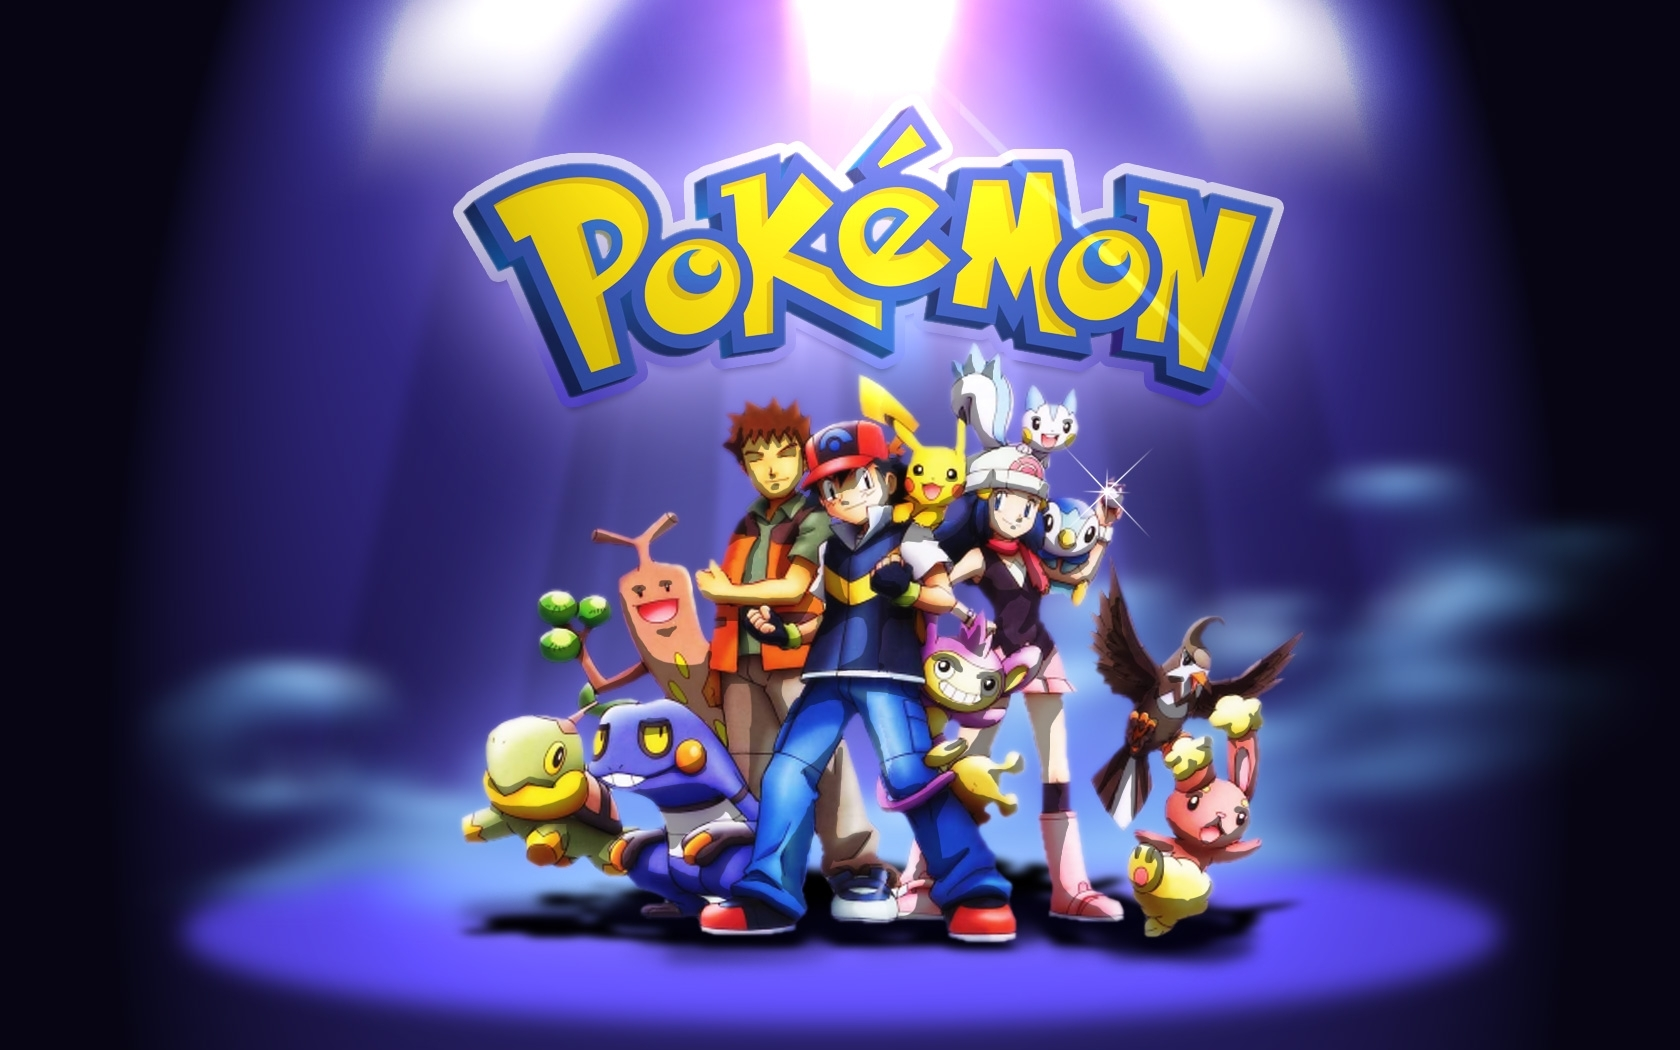 hd: reality pokemon hd wallpapers – download for free